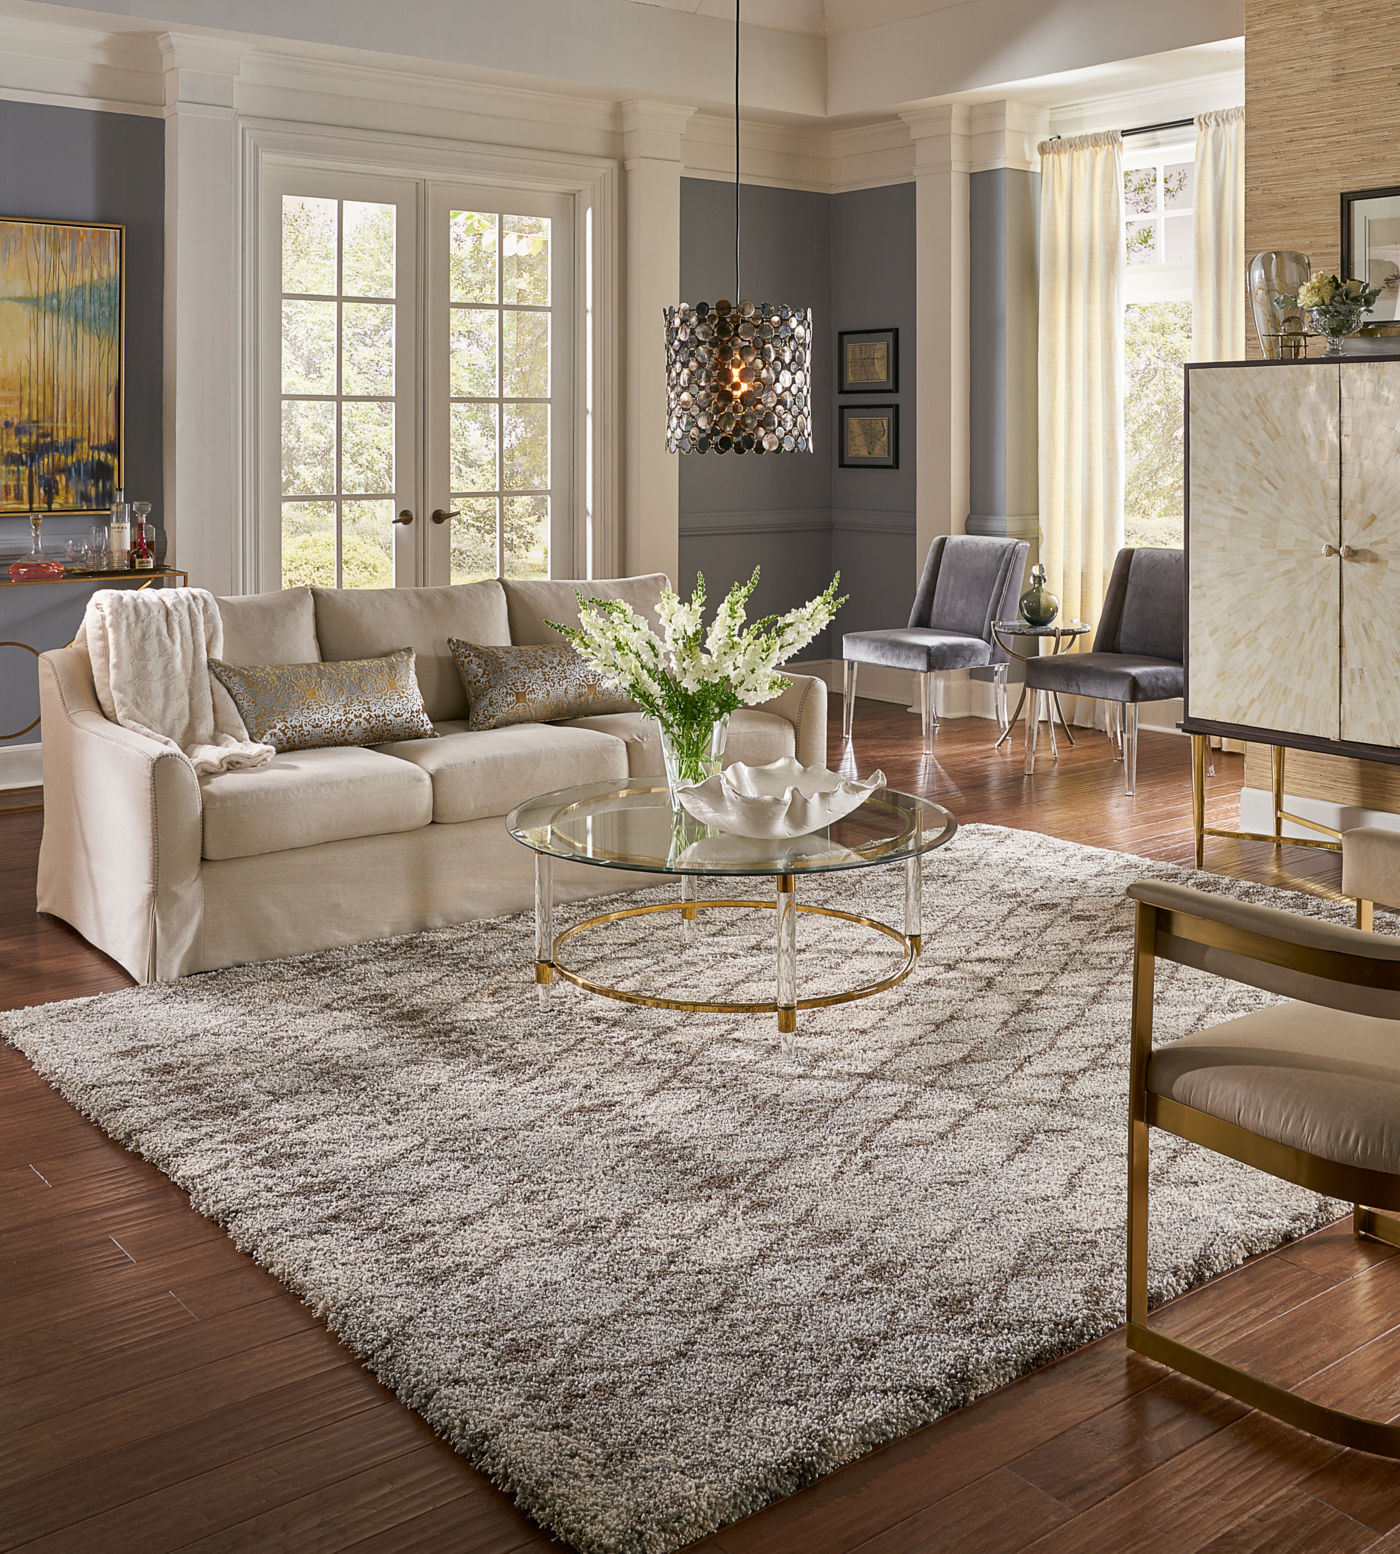 Living room Area Rug | Westport Flooring